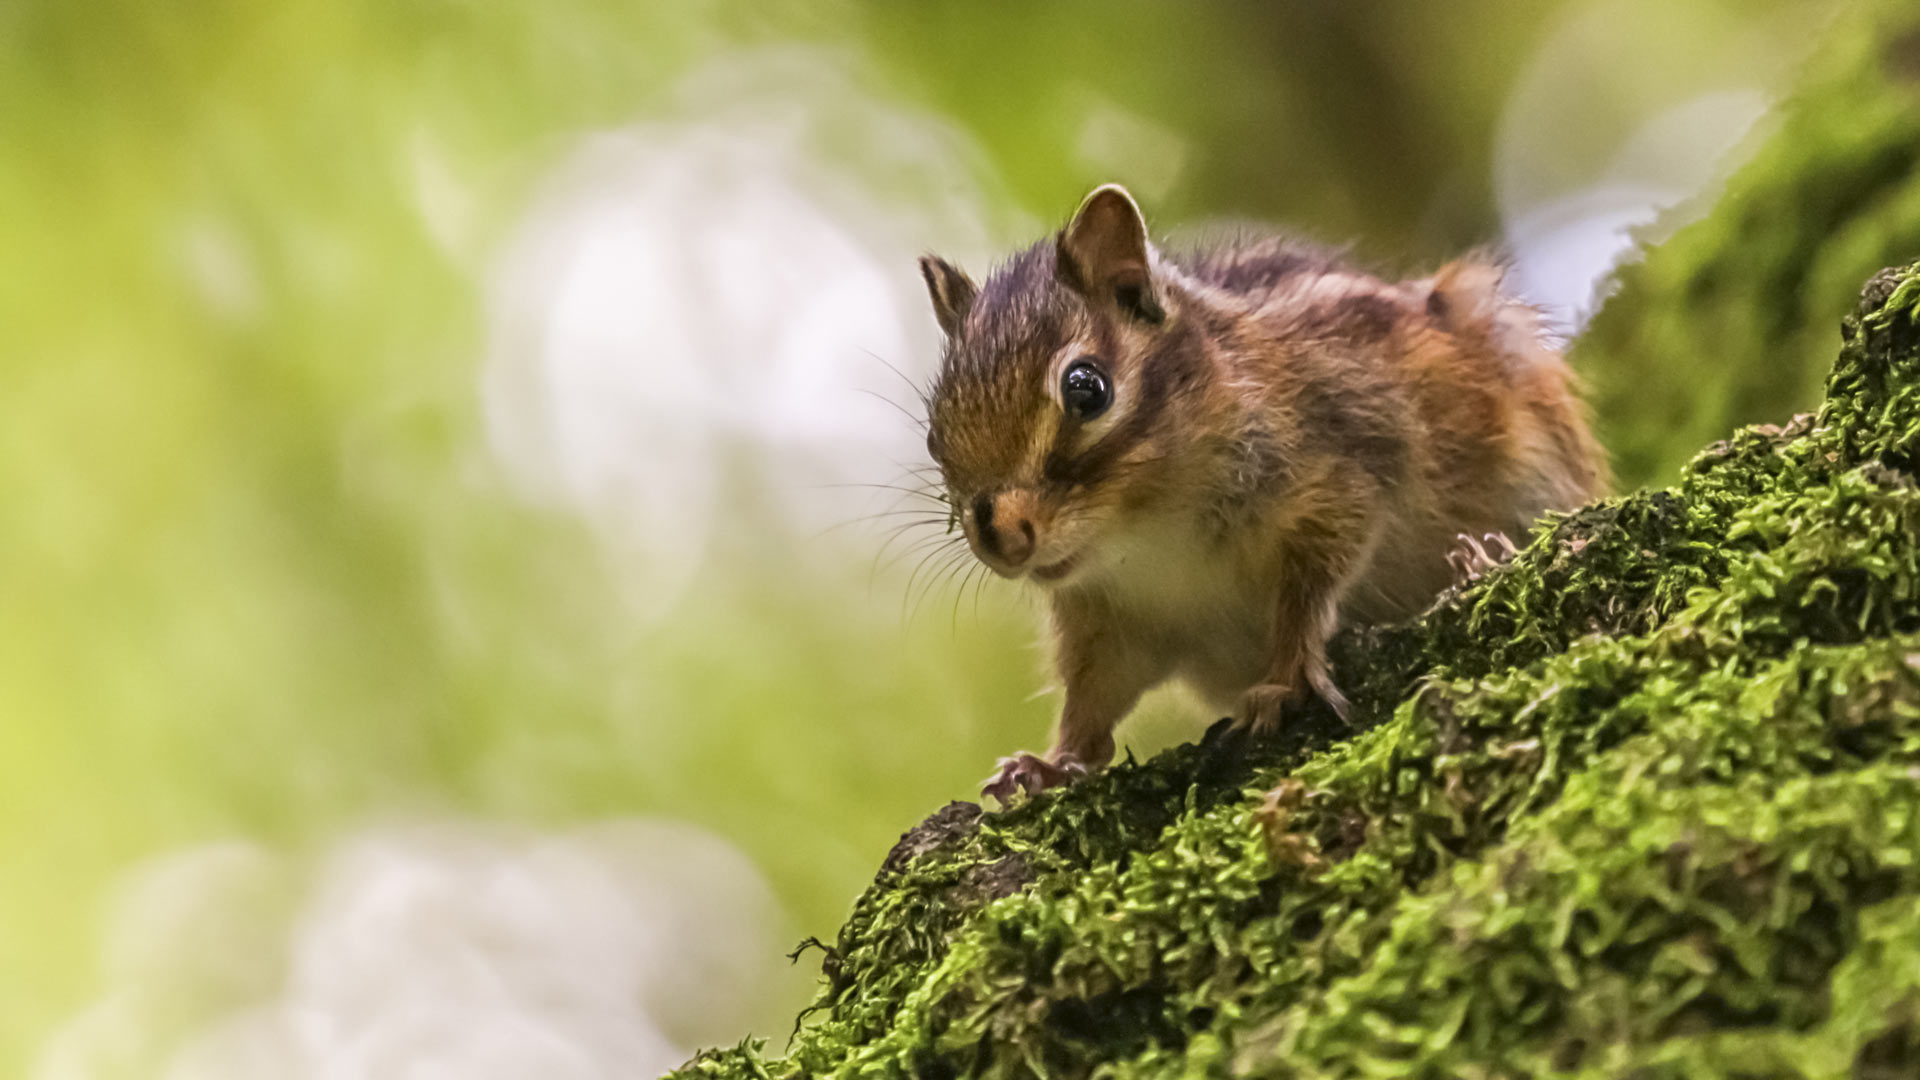 Siberian or common chipmunk squirrel, eutamias sibiricus standing on a tree trunk